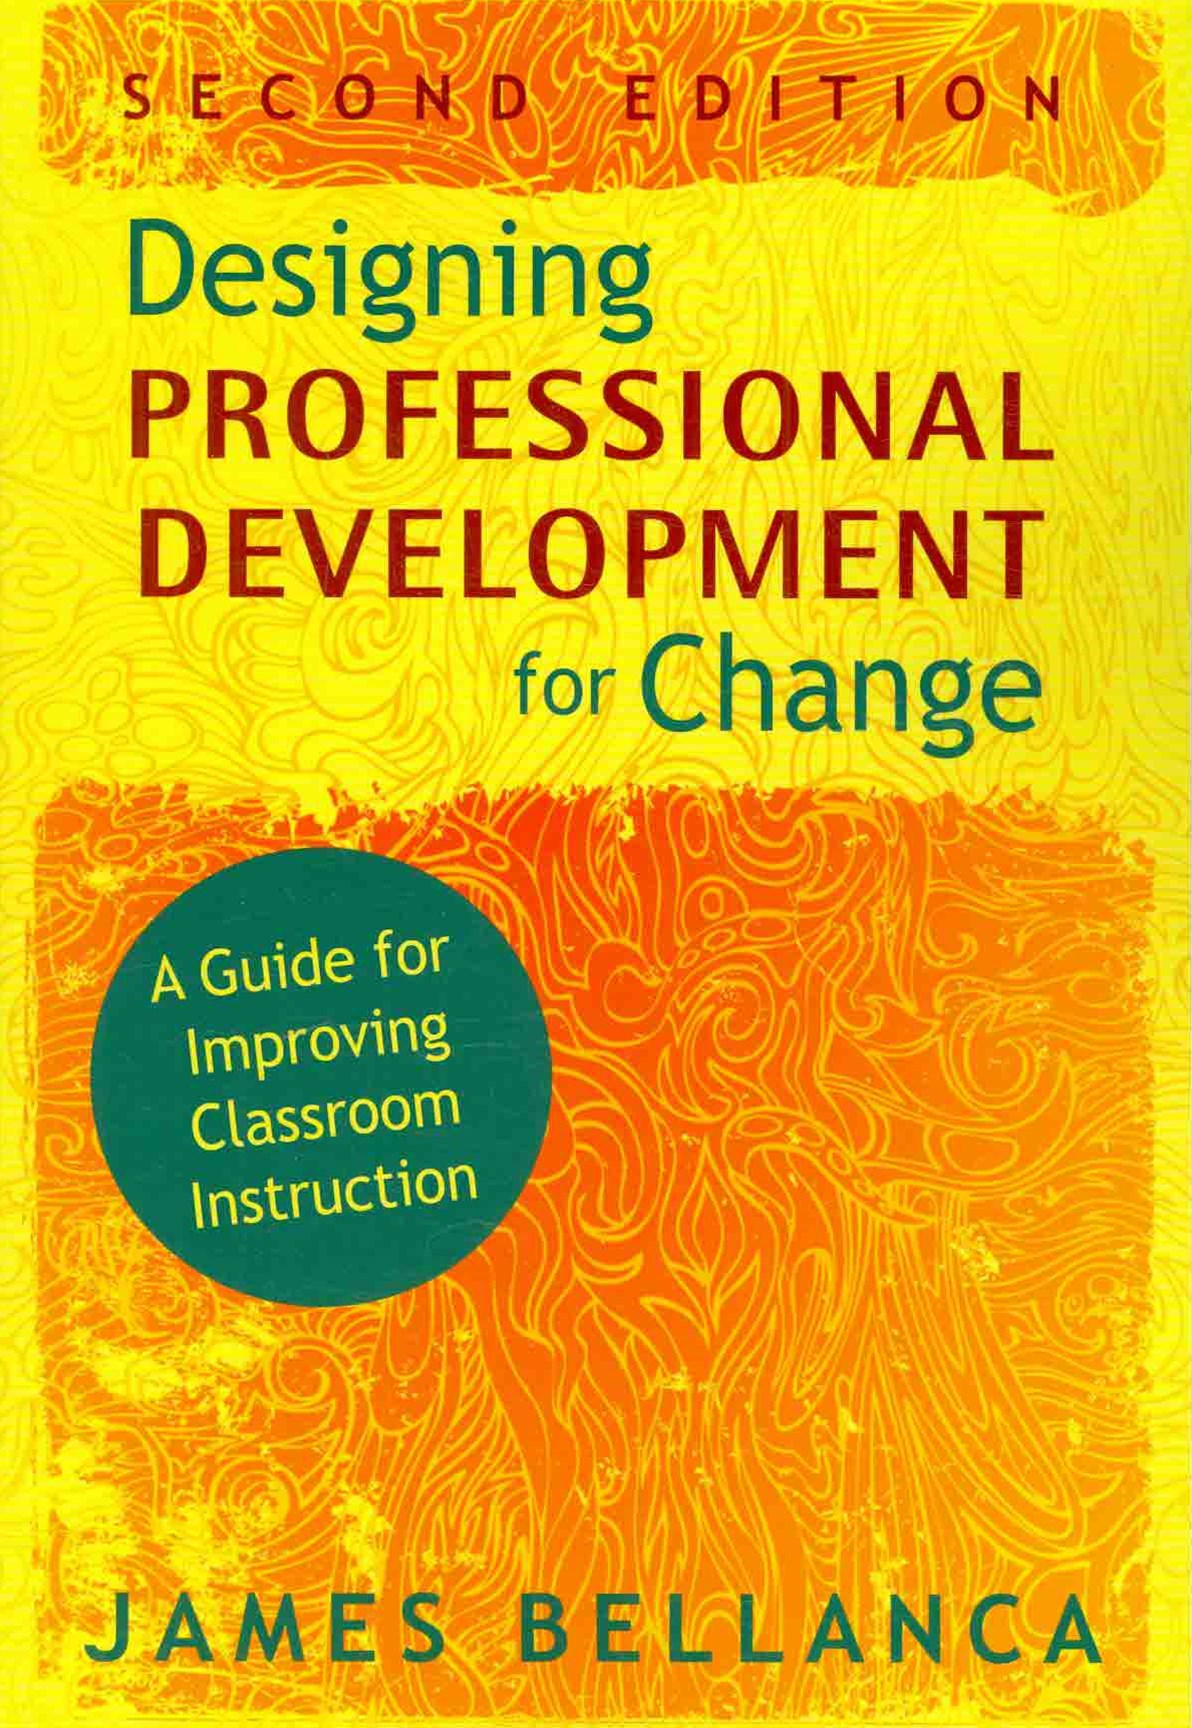 Designing Professional Development for Change